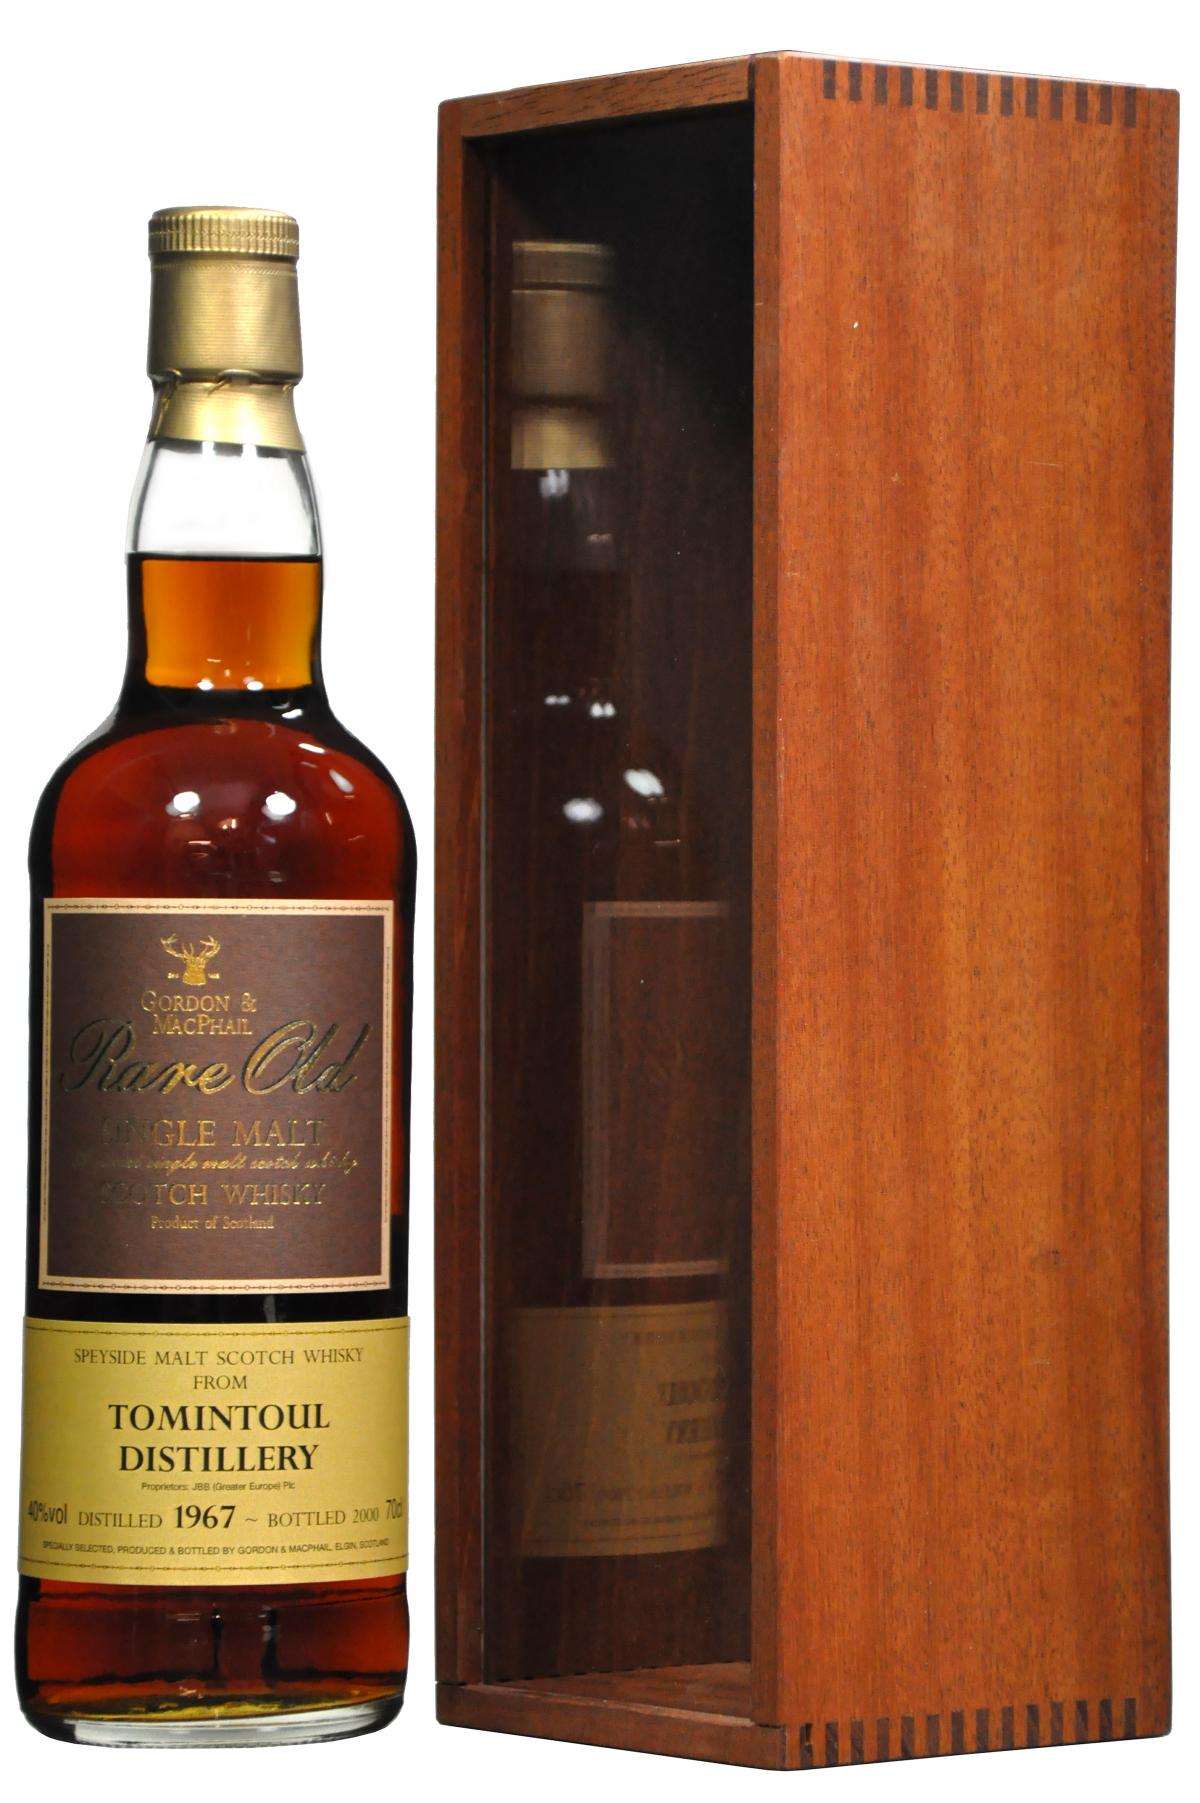 5466-7727tomintoul1967-2000rareold